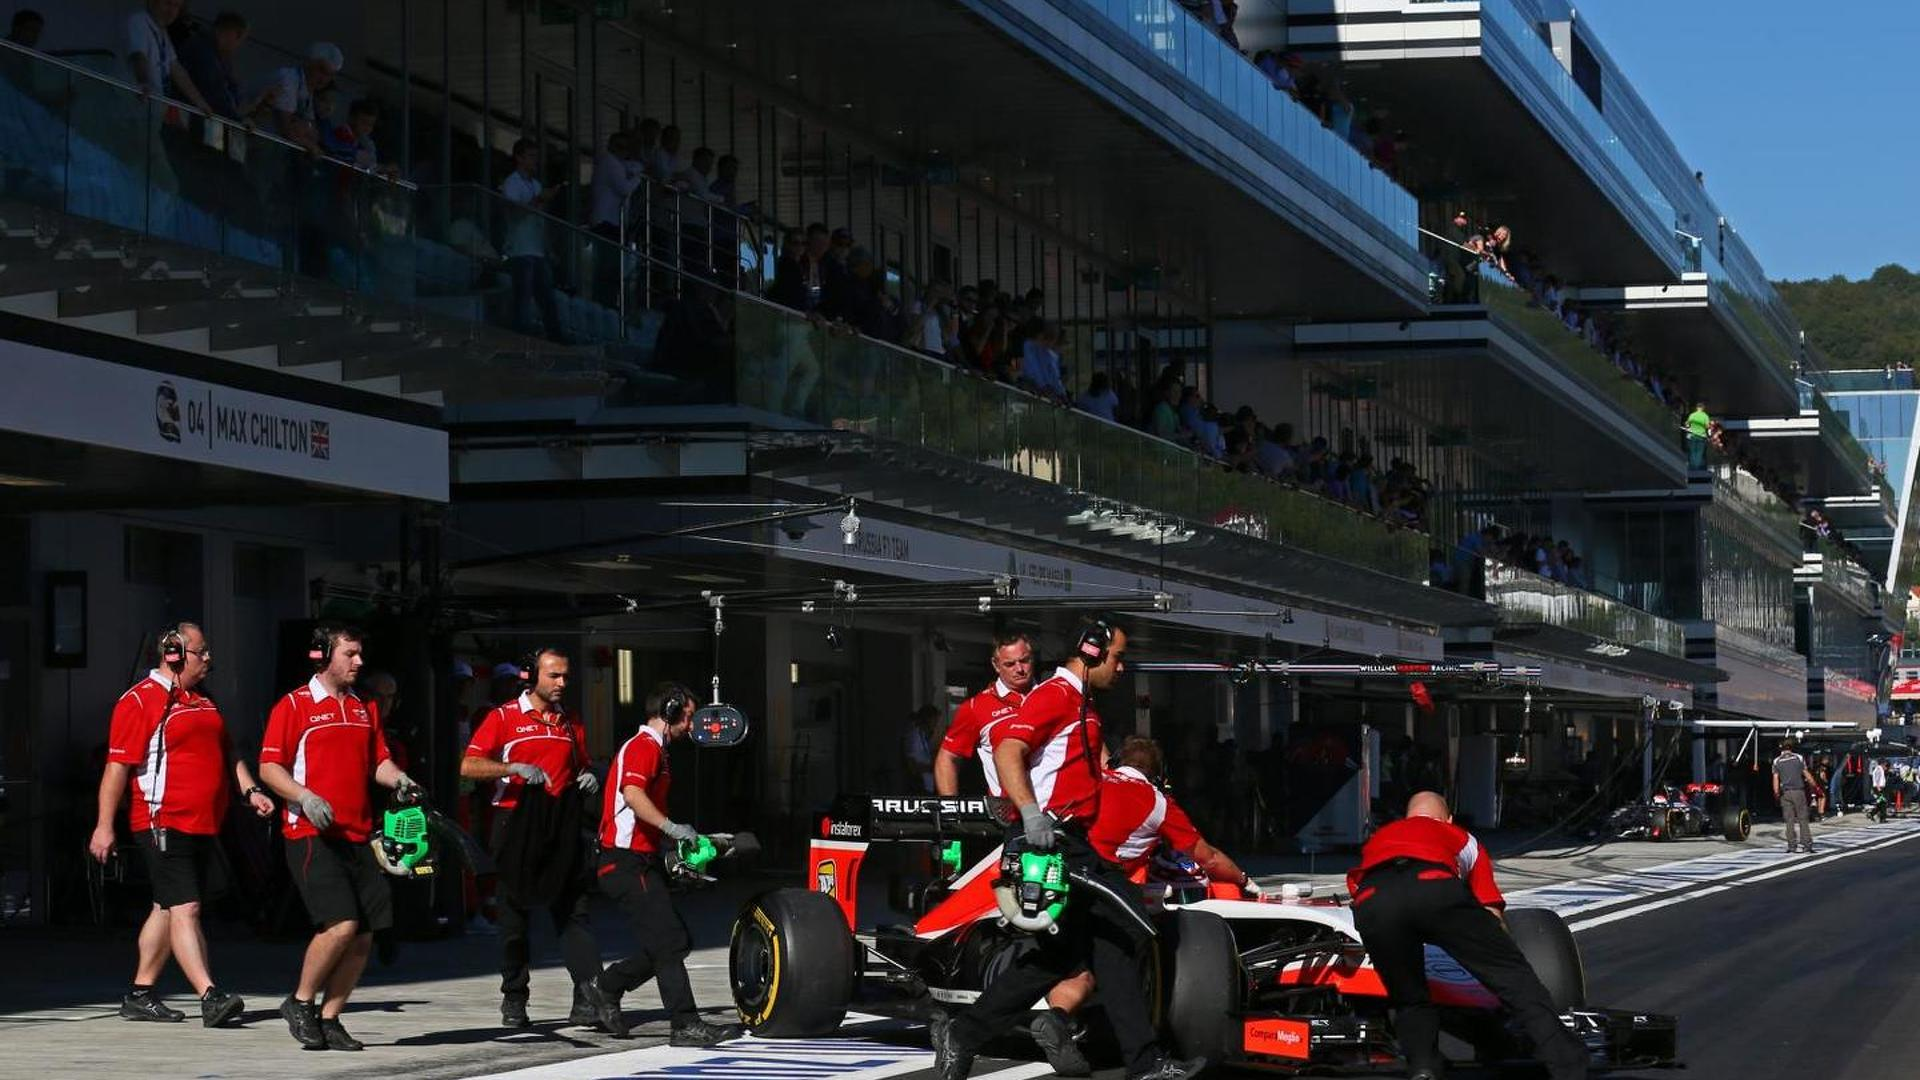 Marussia team staff spotted in Abu Dhabi